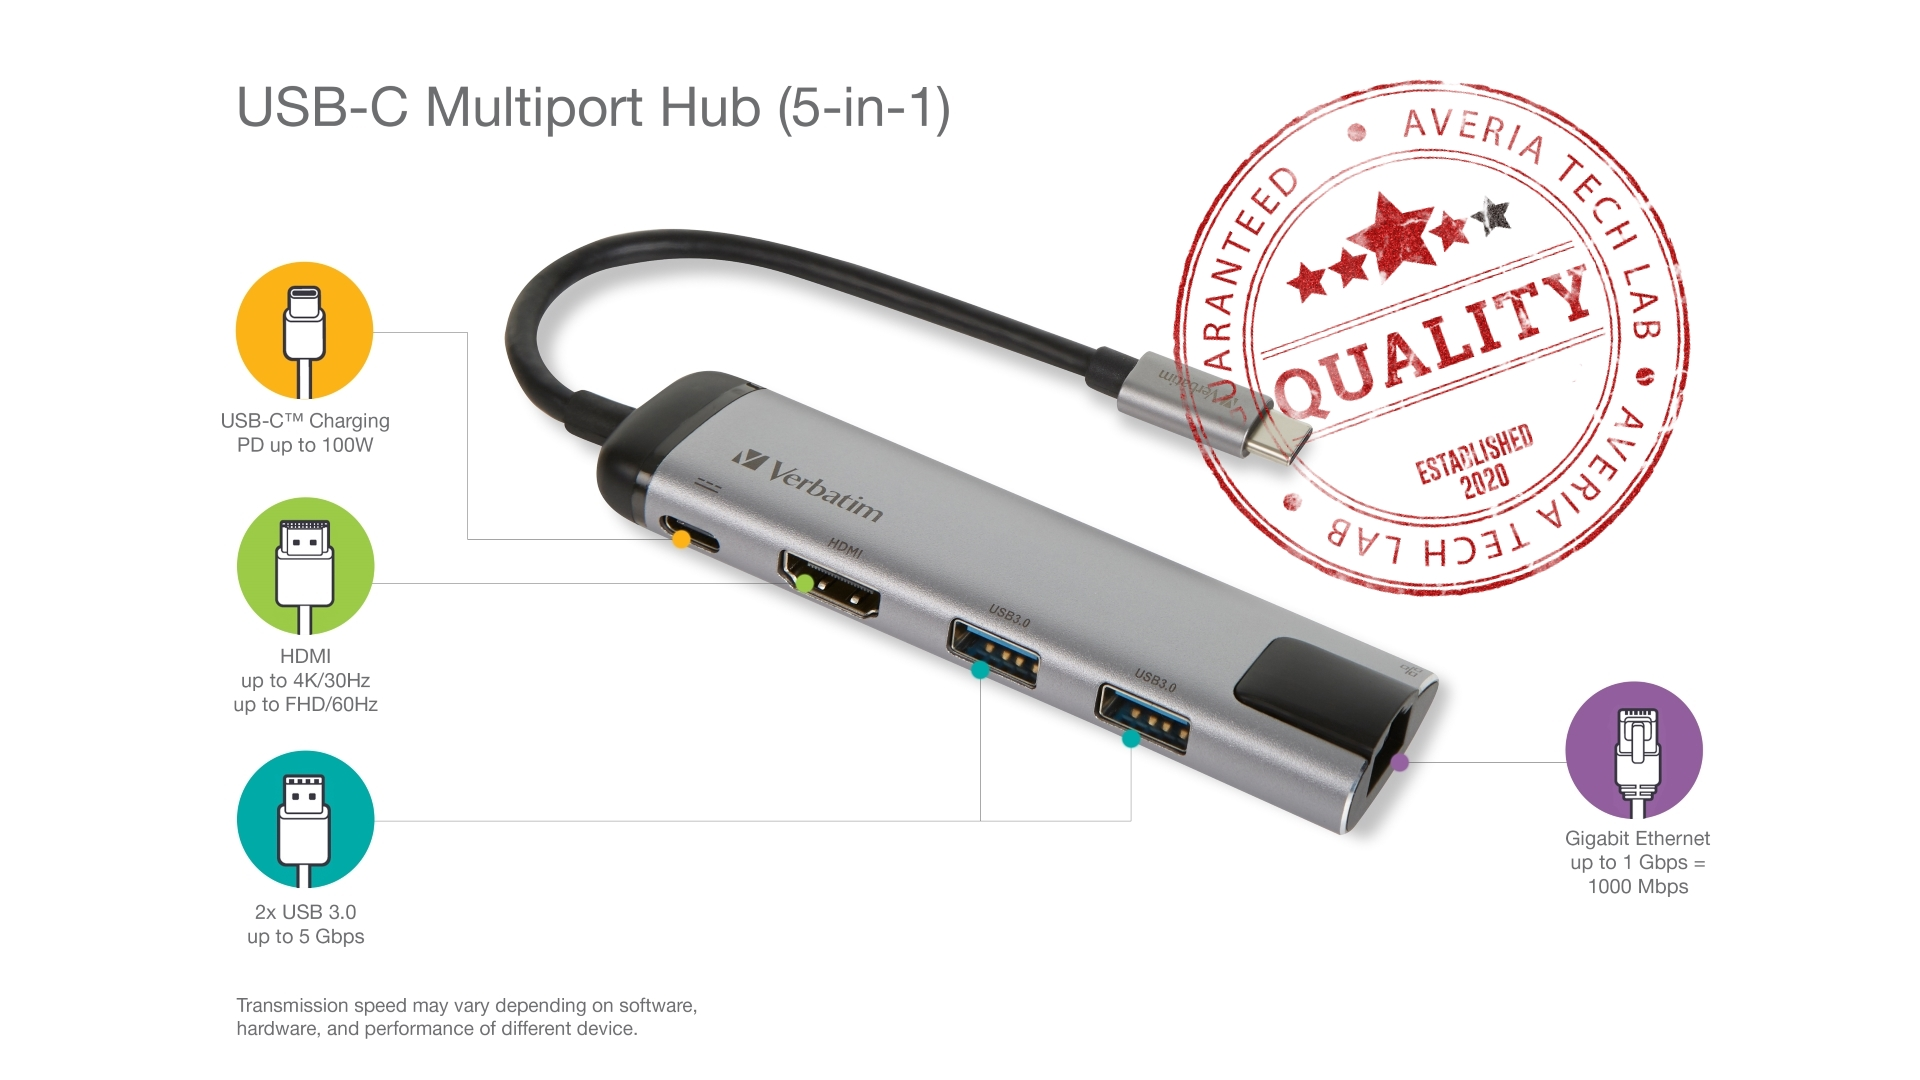 Verbatim USB-C Multiport Hub